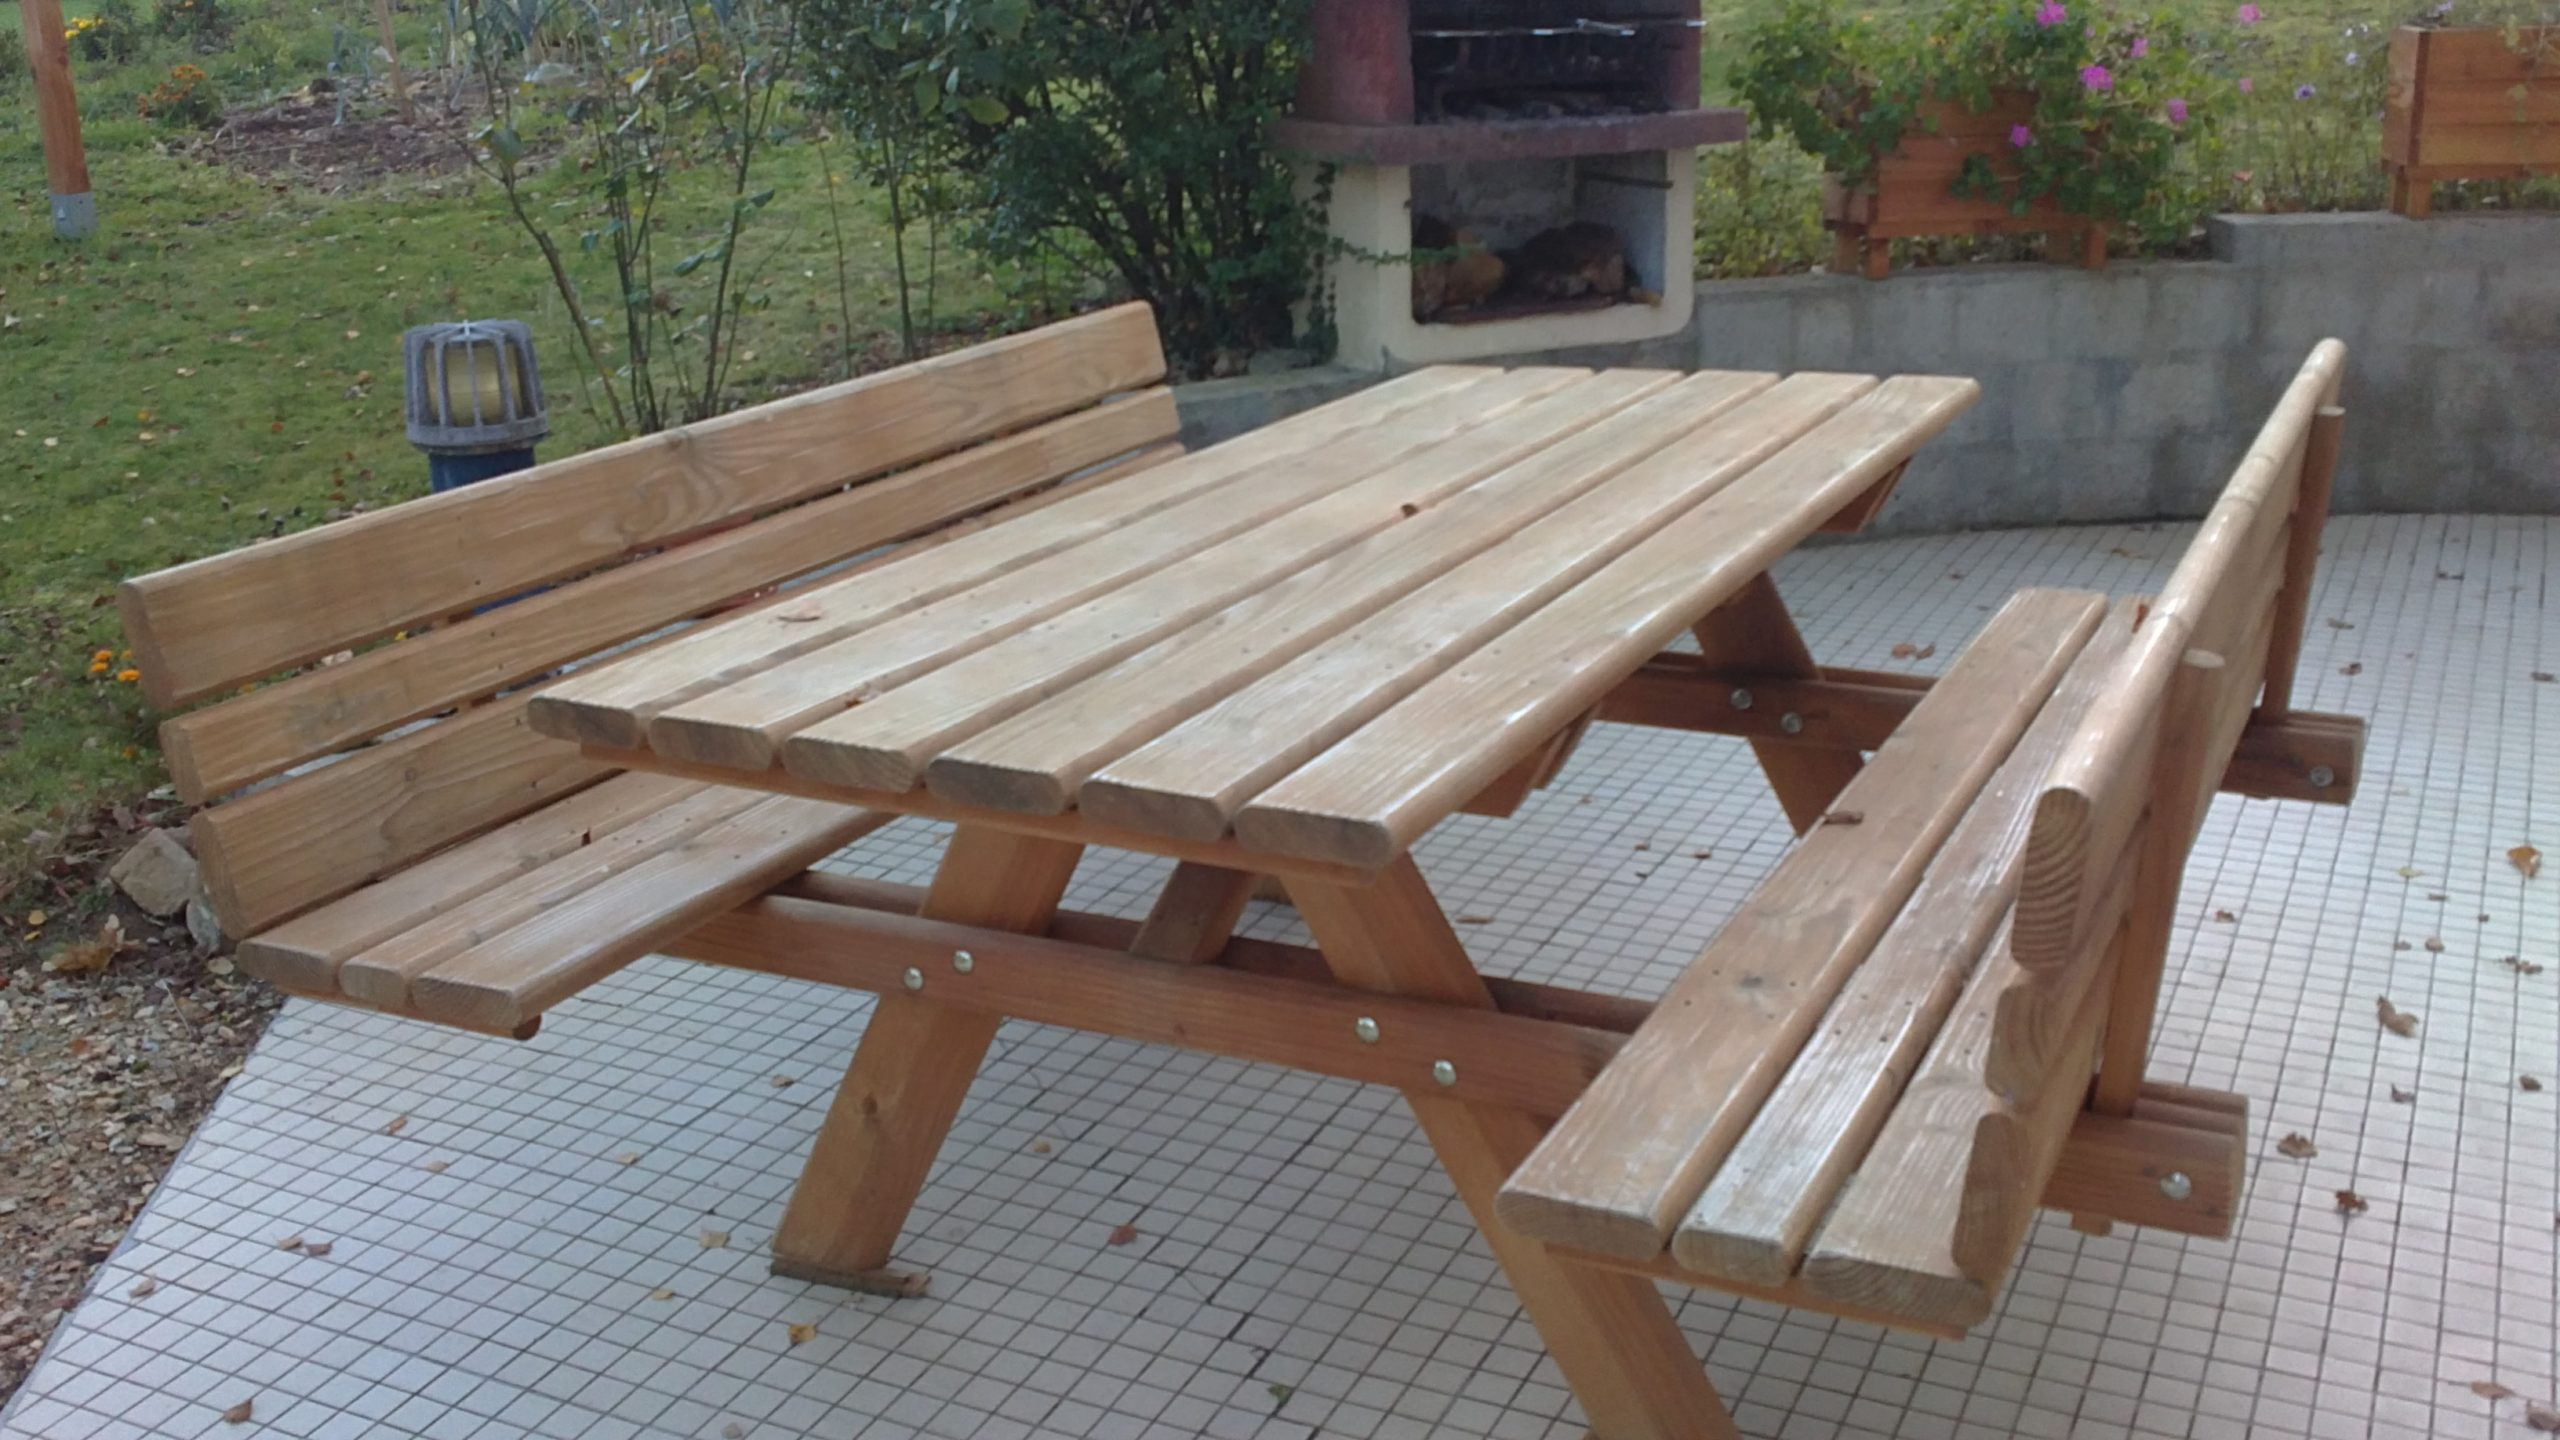 Tables De Jardin En Bois : Scierie Blondy destiné Banc De Jardin Ikea